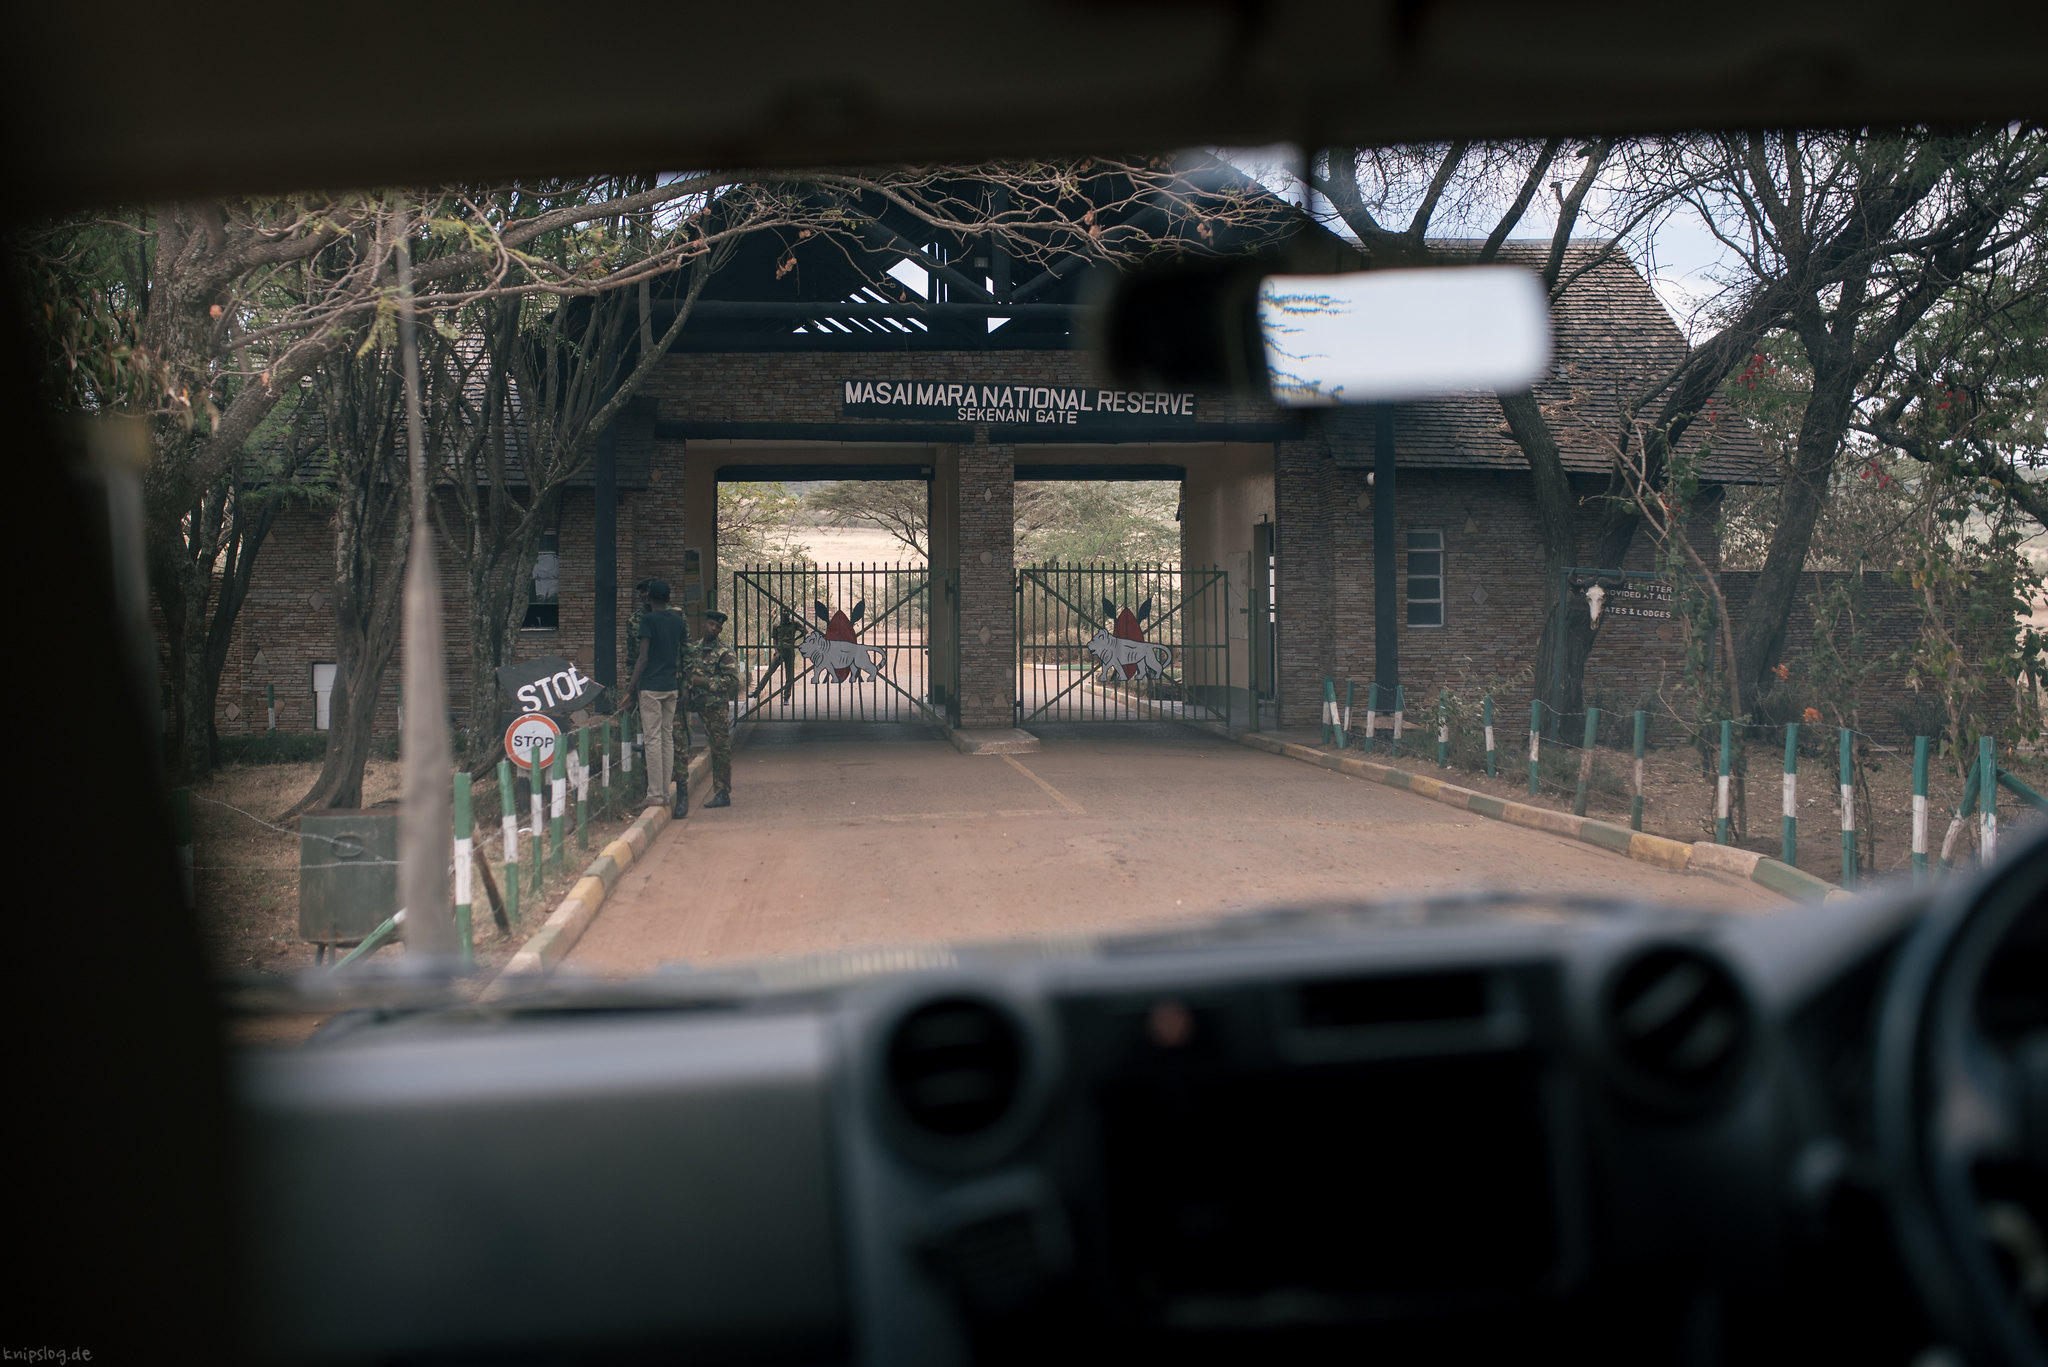 The entry to the famous Masai Mara